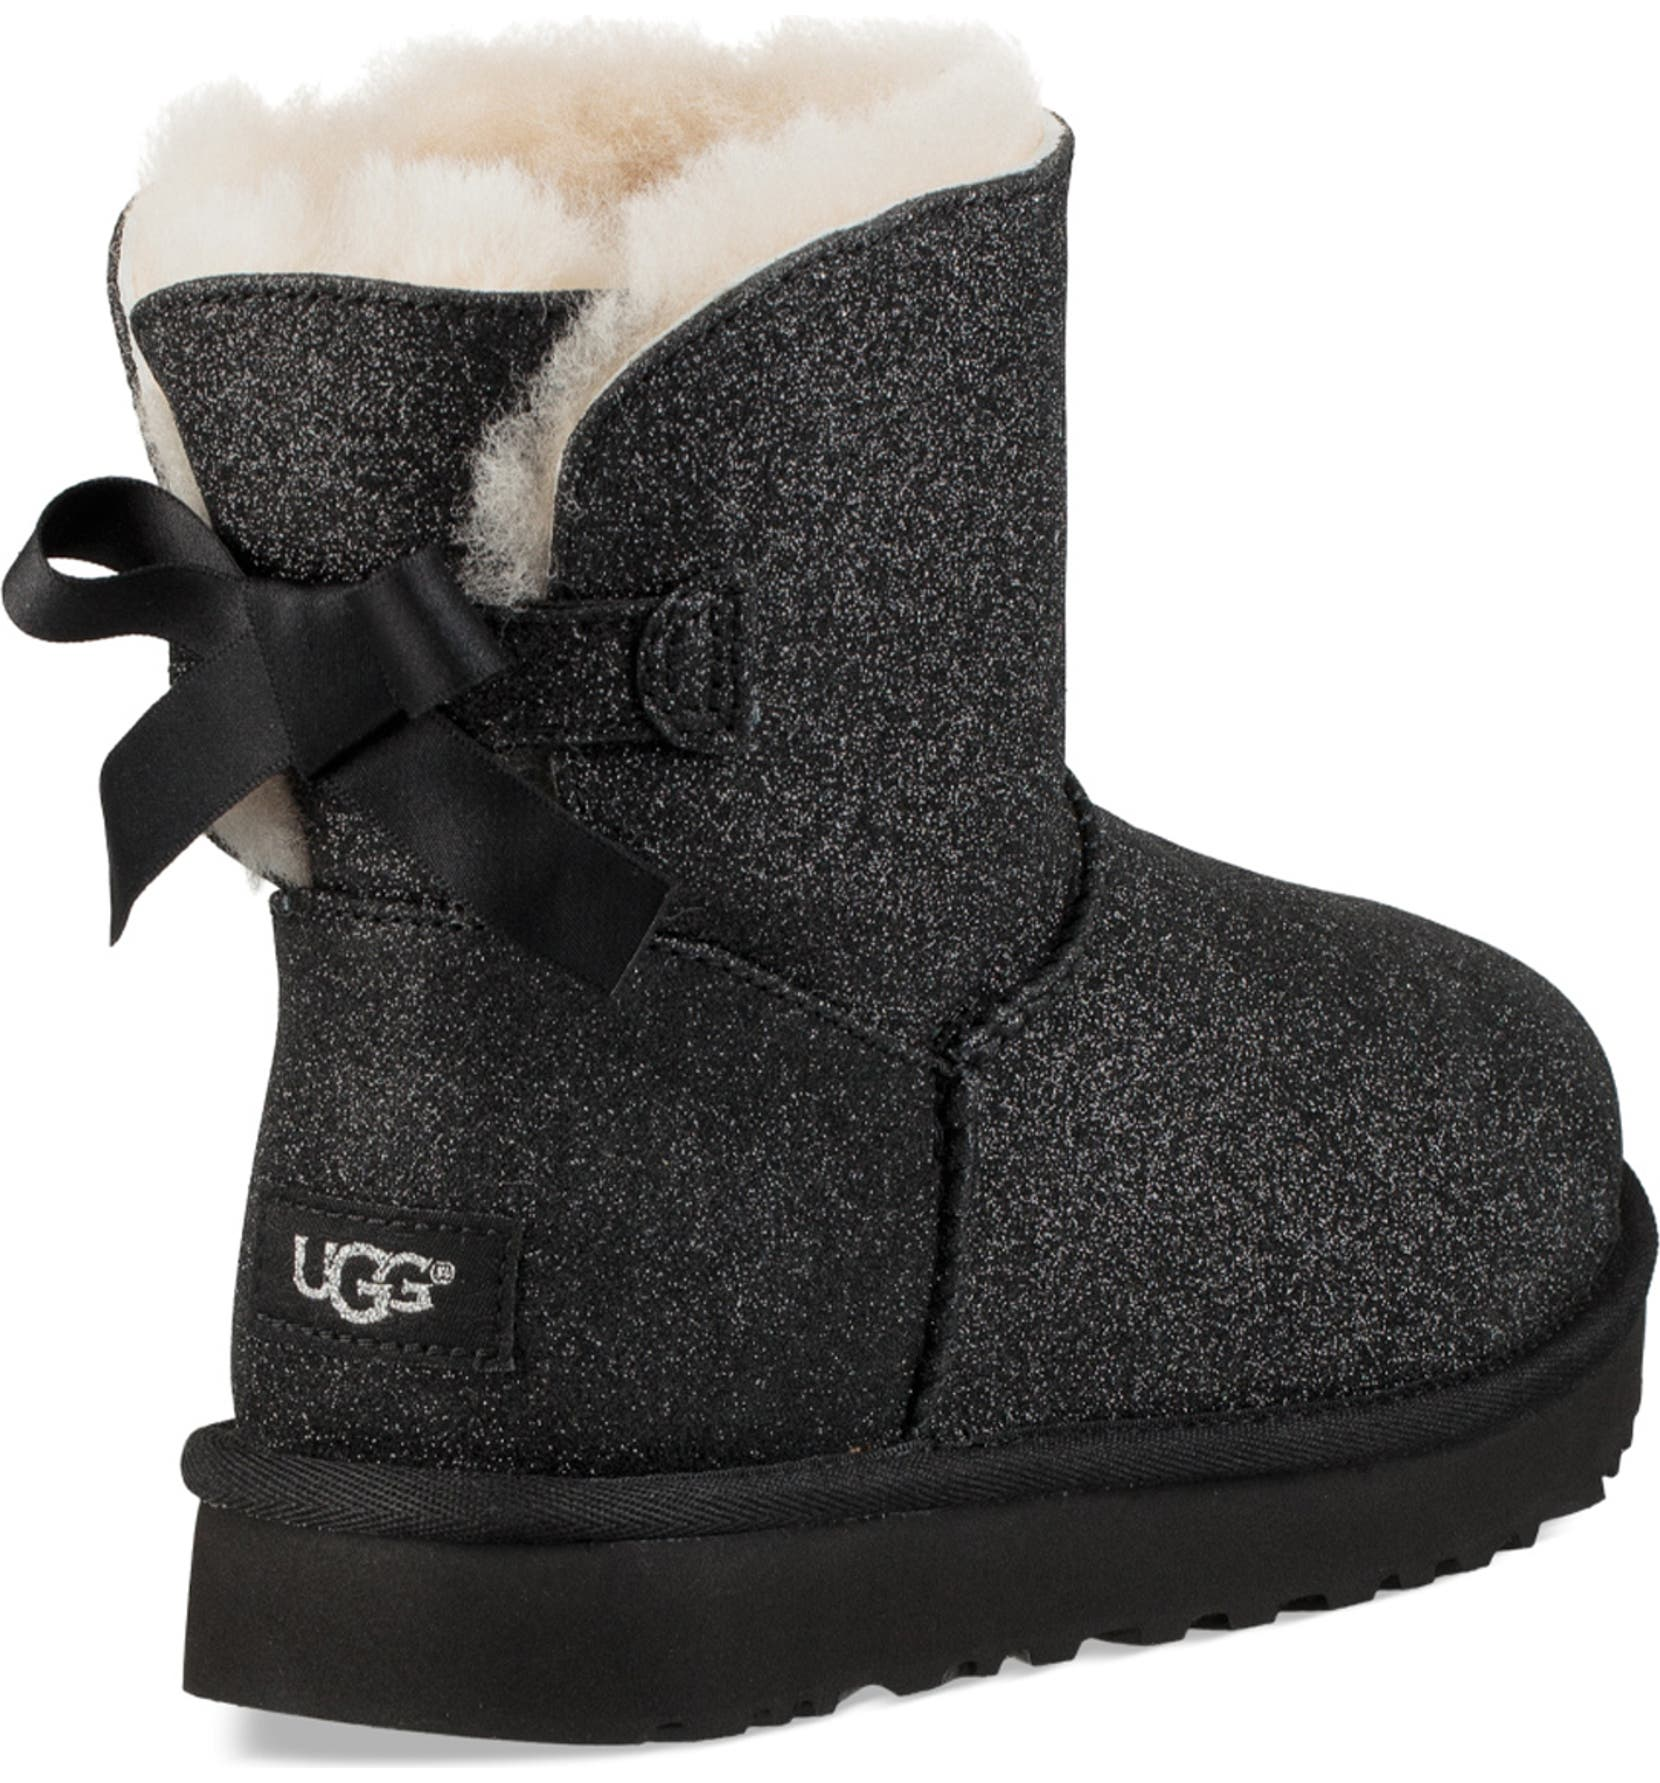 5c9ec8420d1 Mini Bailey Bow Sparkle Genuine Shearling Boot